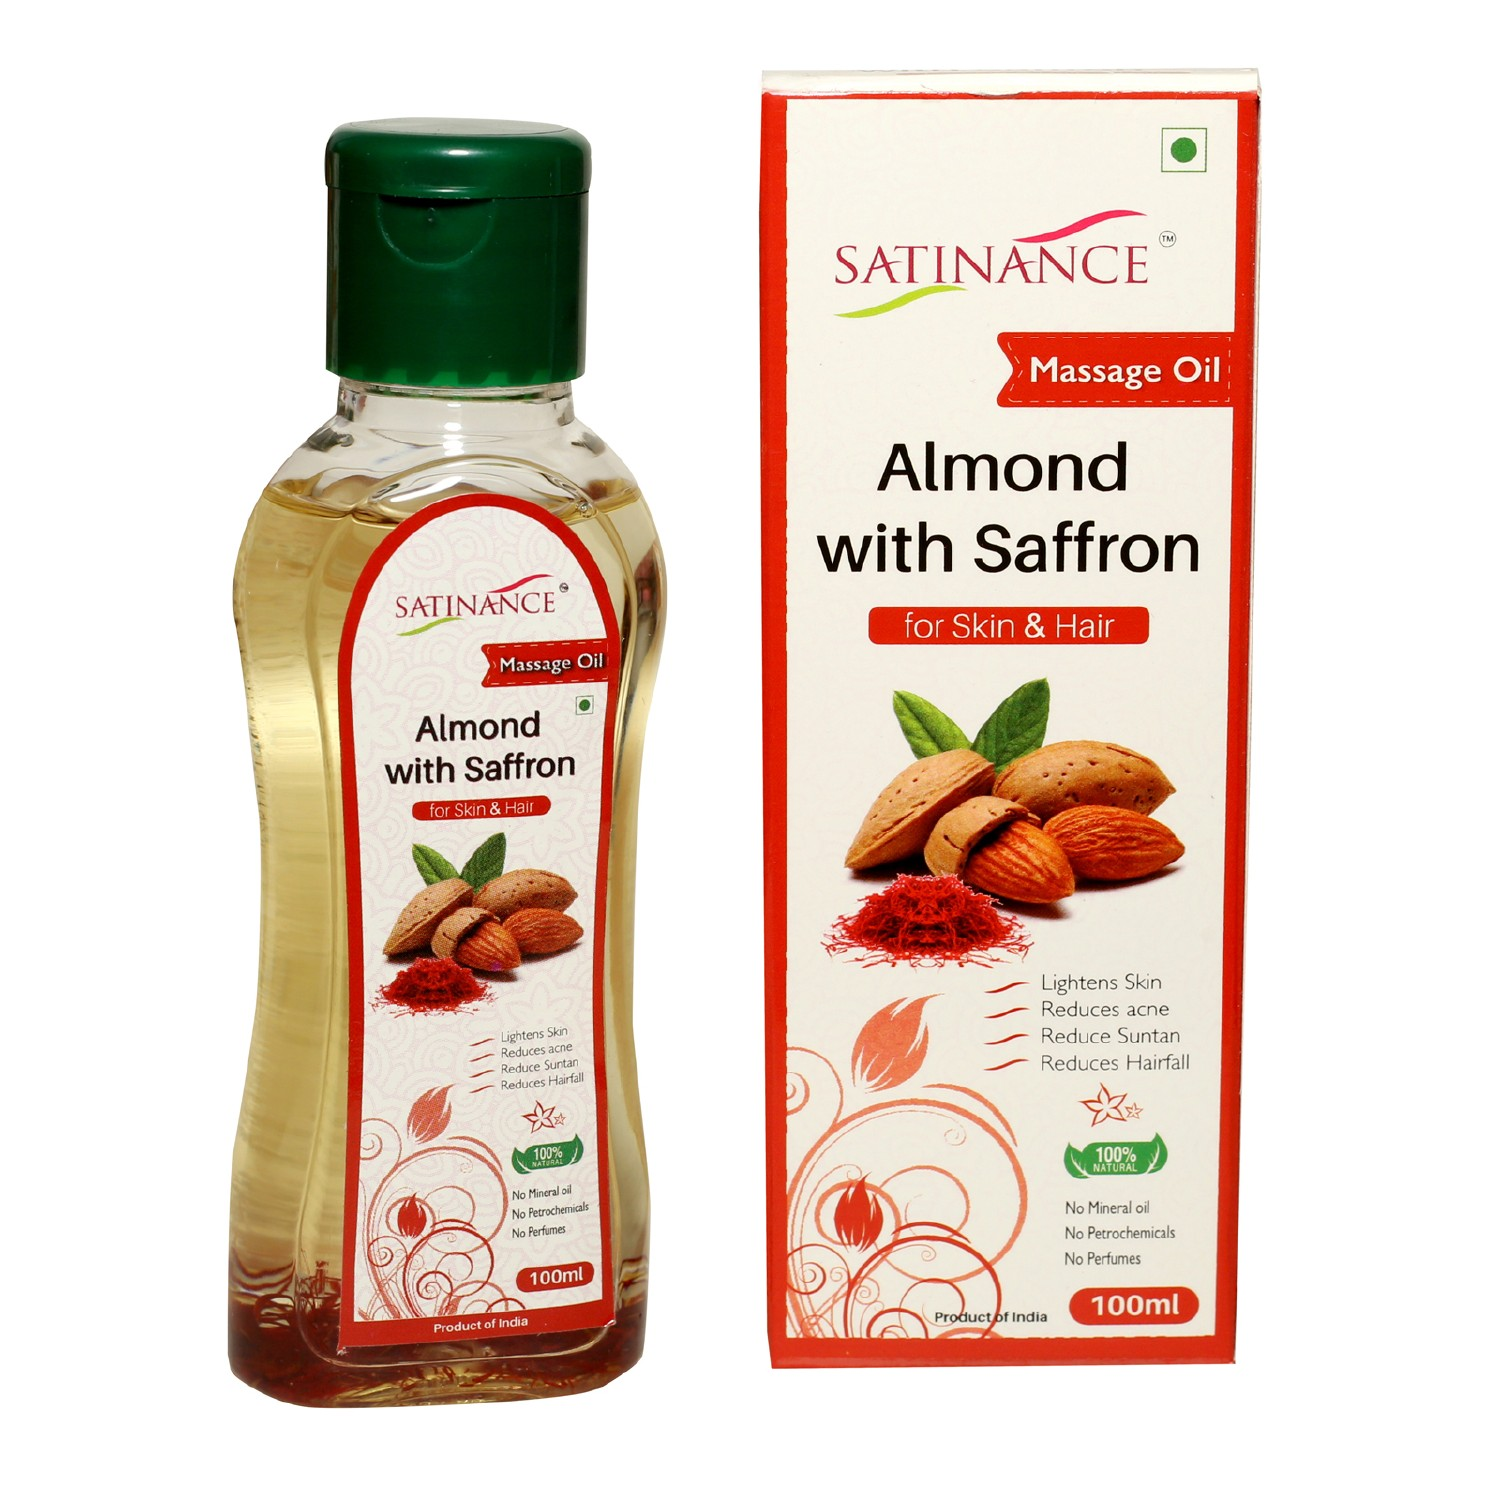 Almond With Saffron Massage Oil -100ml(No Mineral Oil, No Petrochemicals, No Perfumes)